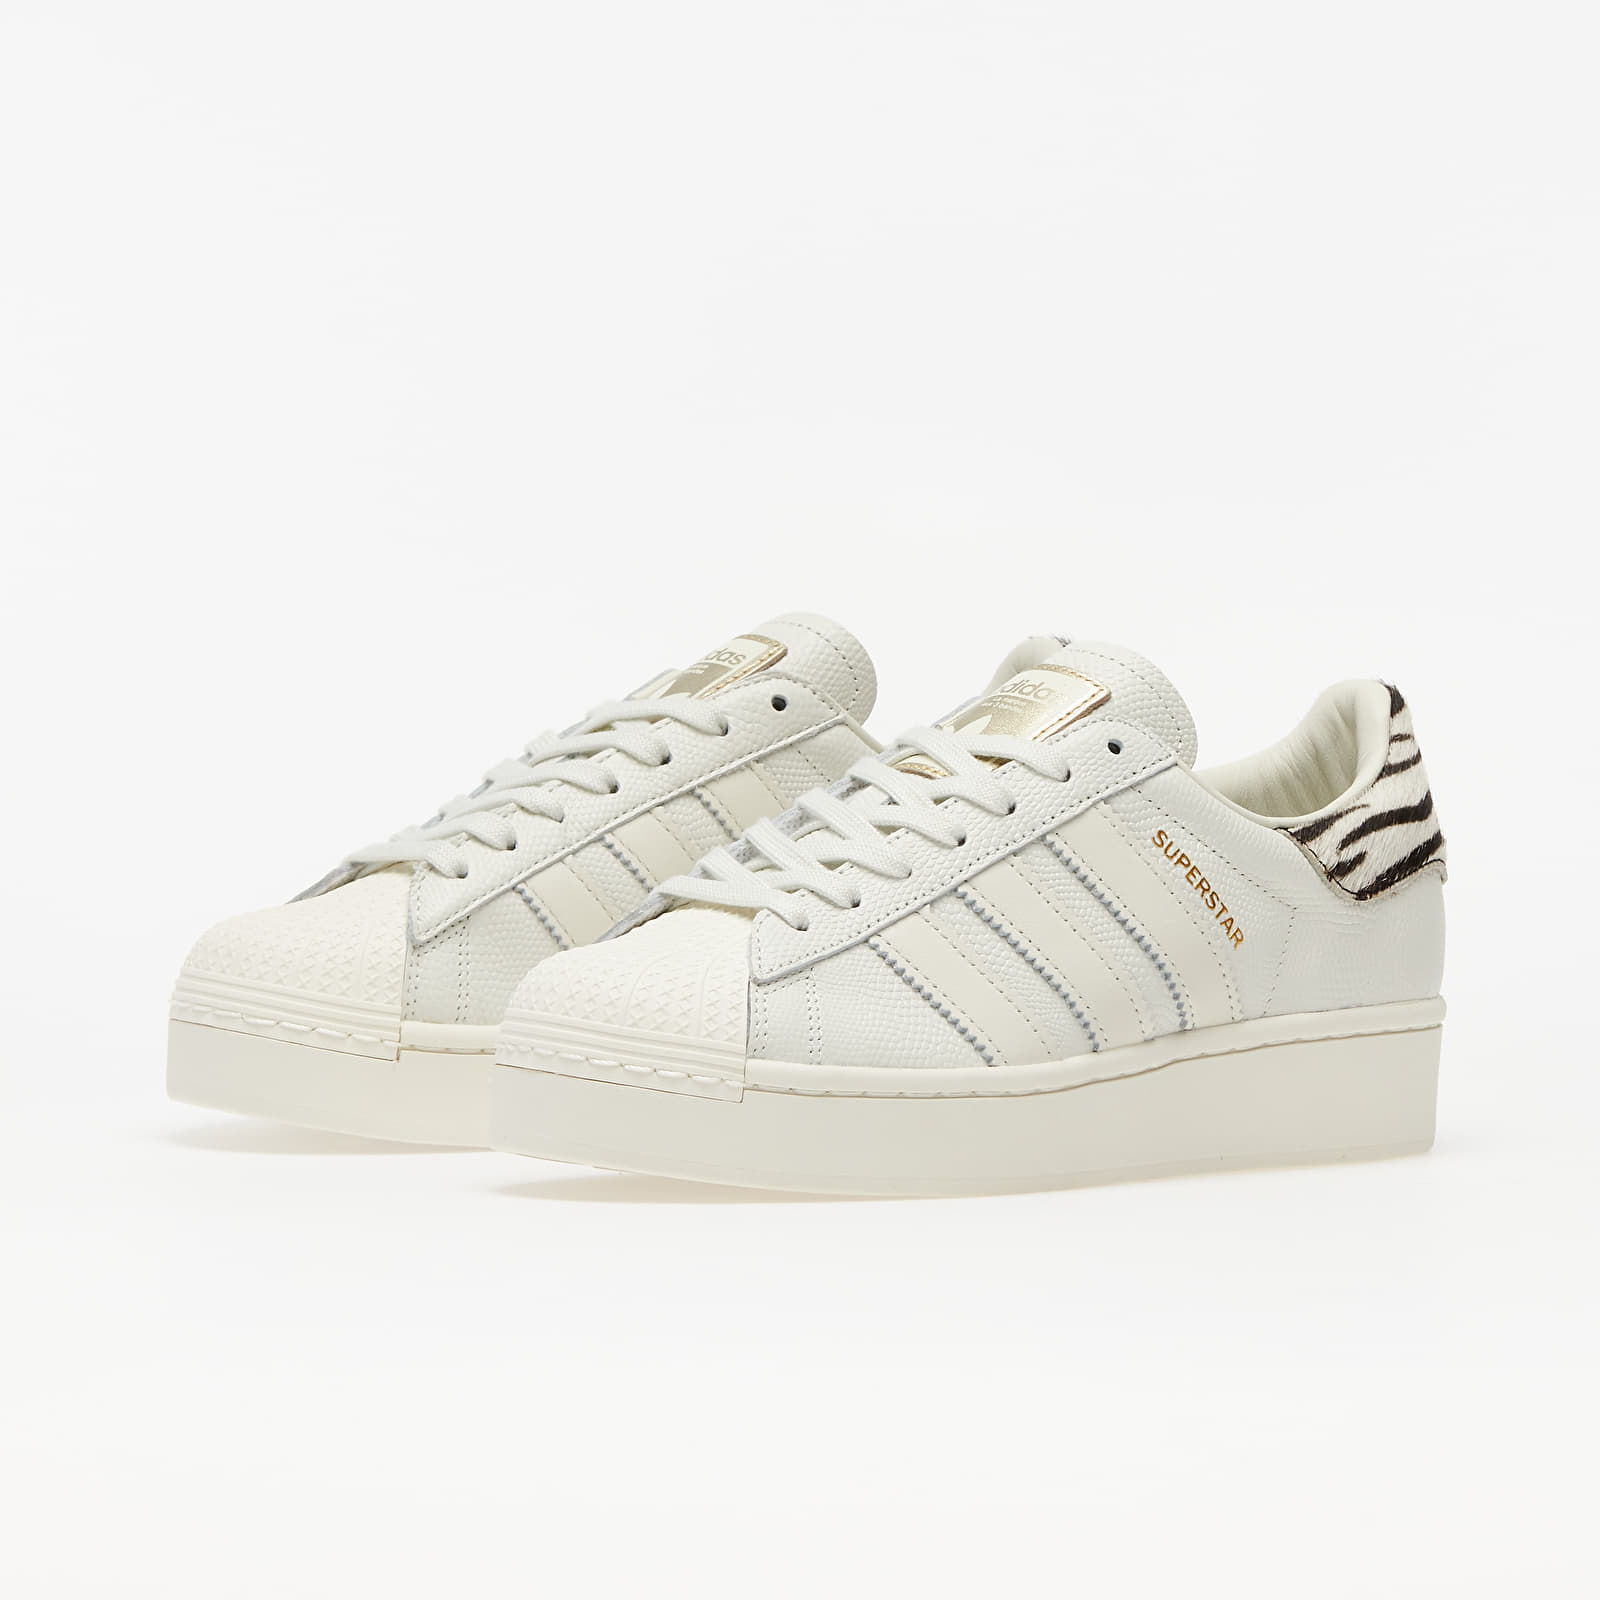 Adidas Superstar Bold W White Tint/ Off White/ Core Black